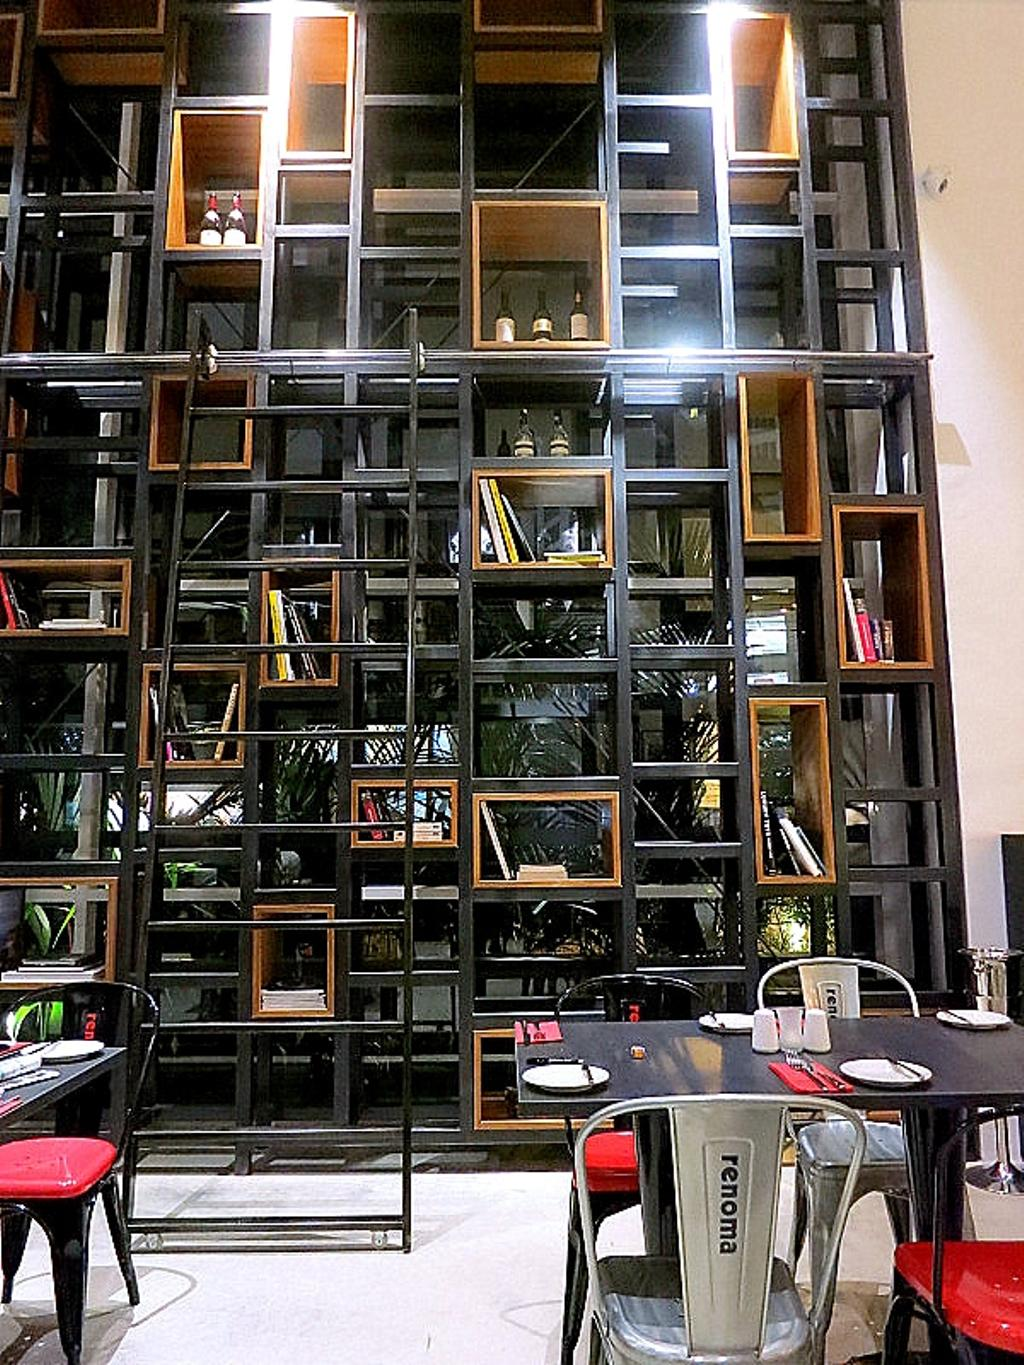 Renoma Cafe KL, Commercial, Architect, Aamer Architects, Contemporary, High Shelves, Open Shelves, Black Shelves, Colourful Chairs, Colorful Chairs, Aluminium Chairs, Bookcase, Furniture